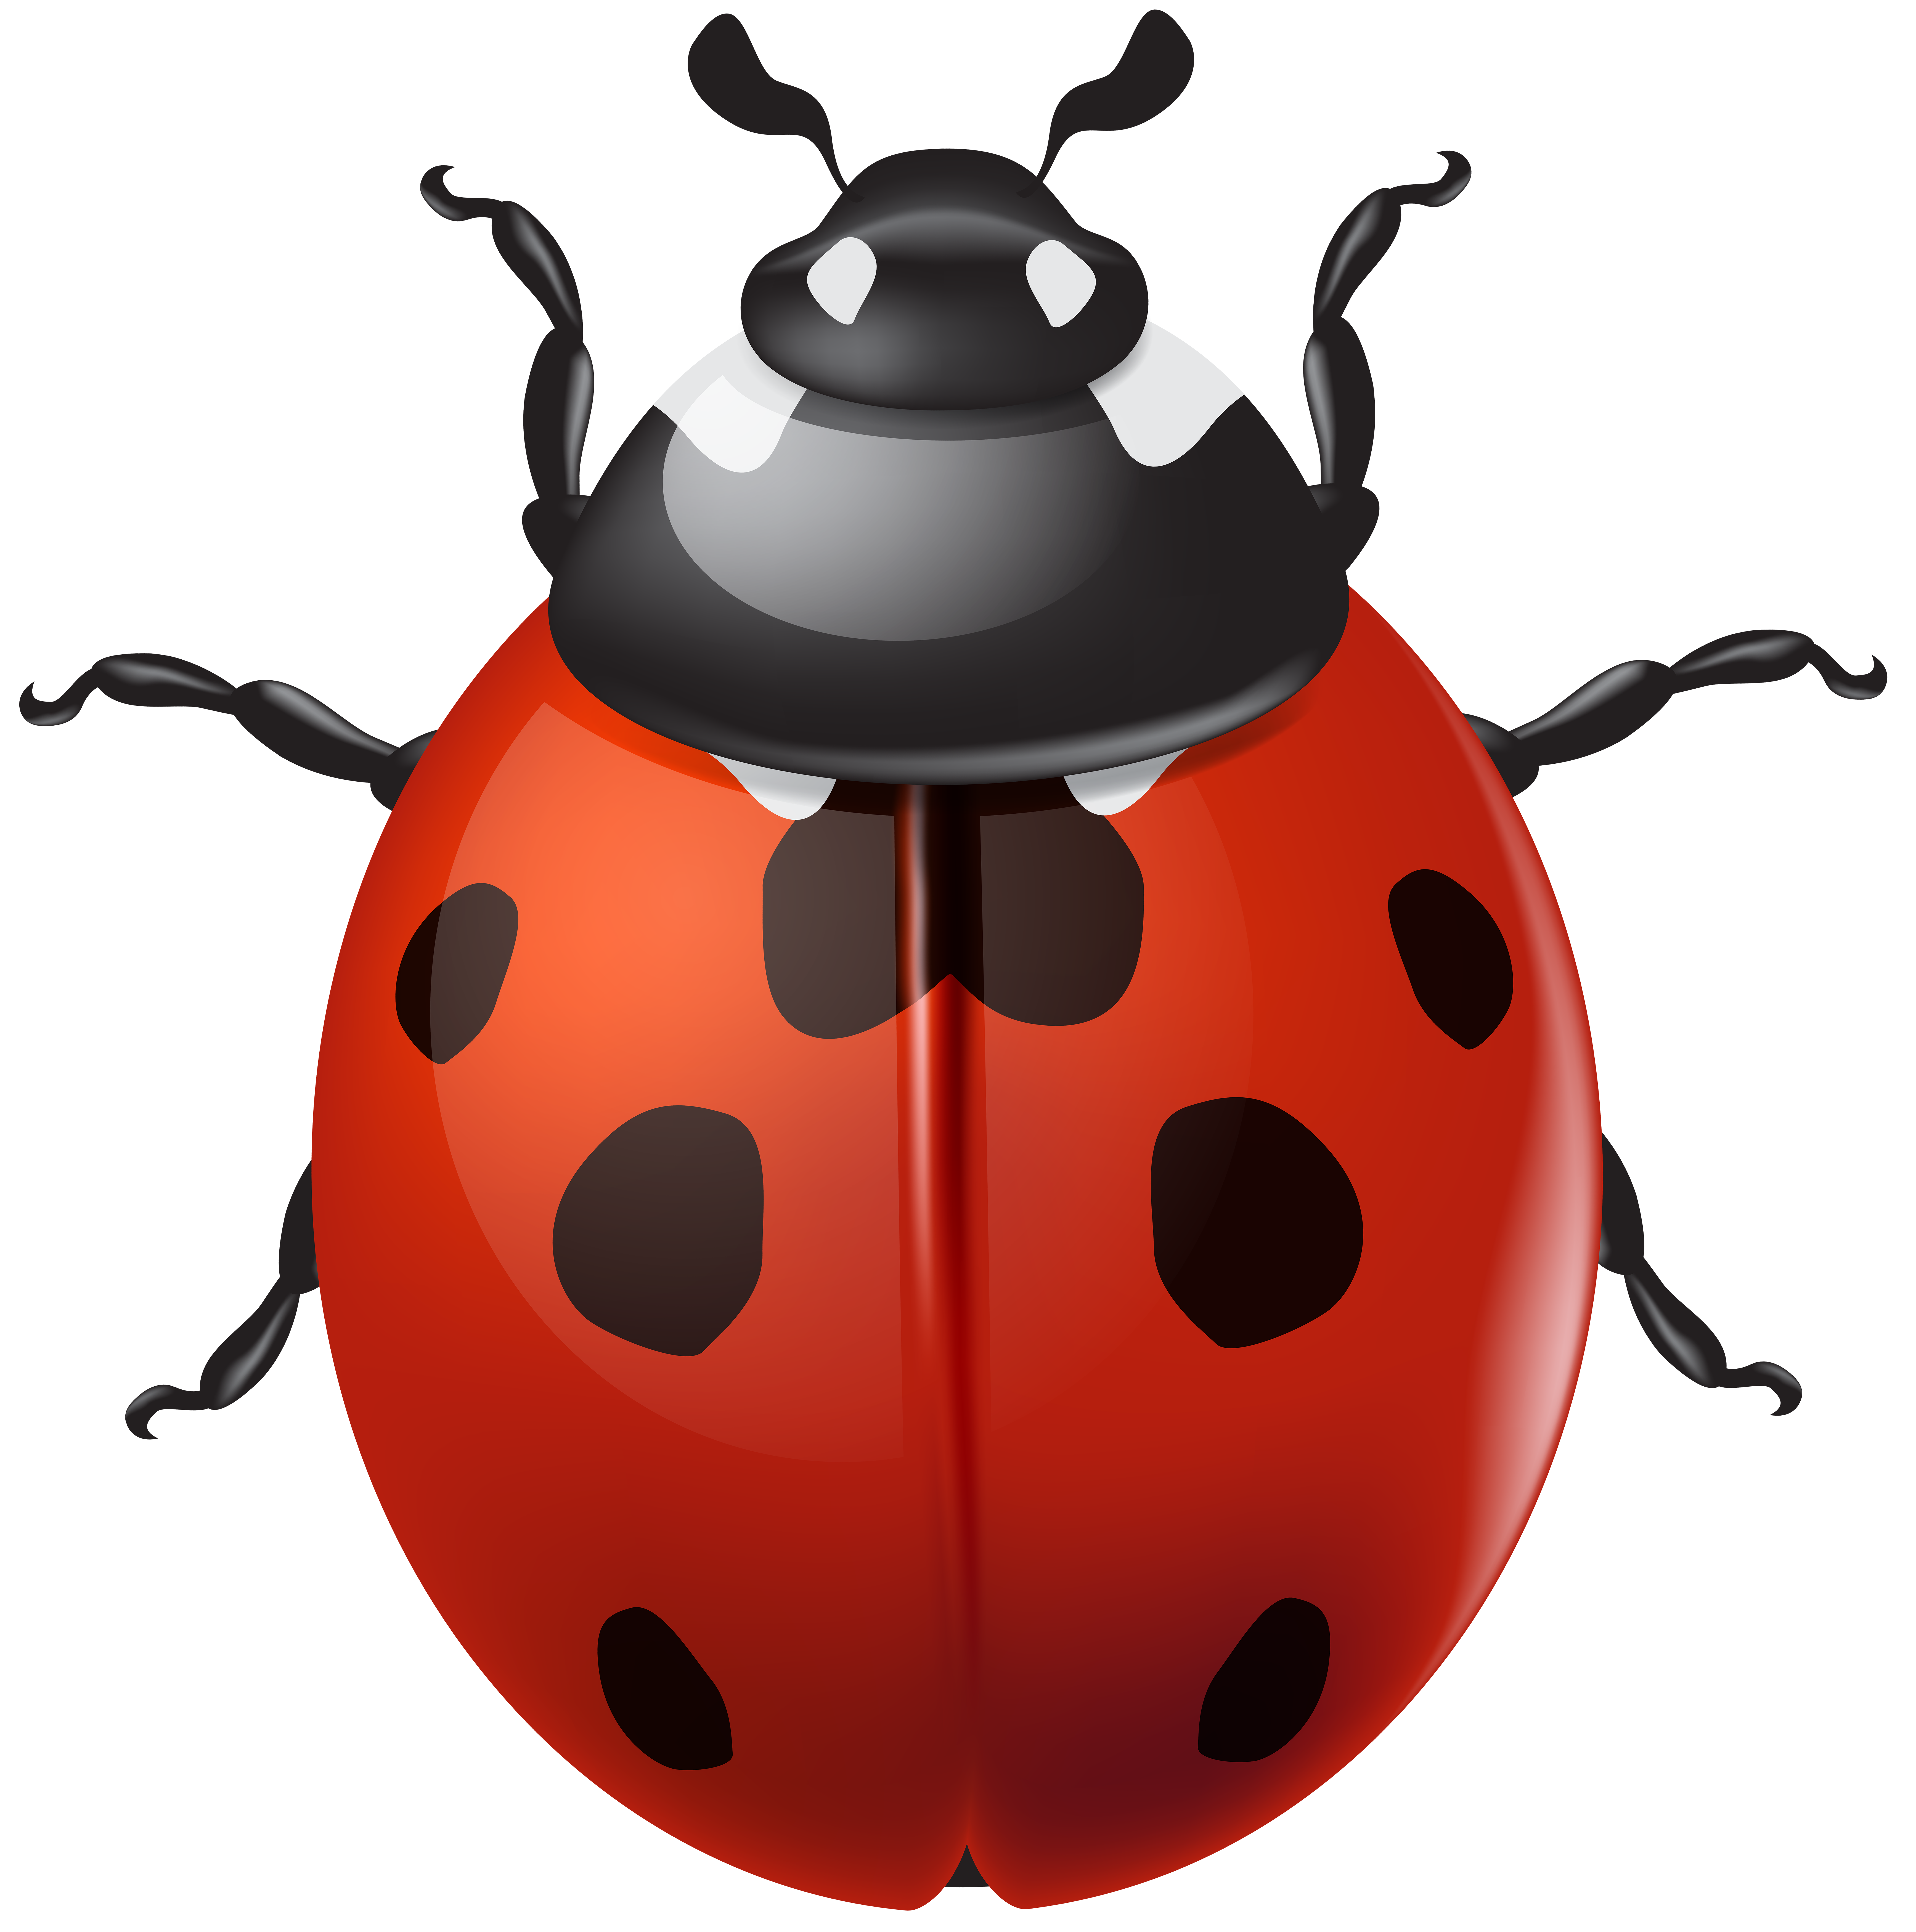 Ladybug Png - View full size ?